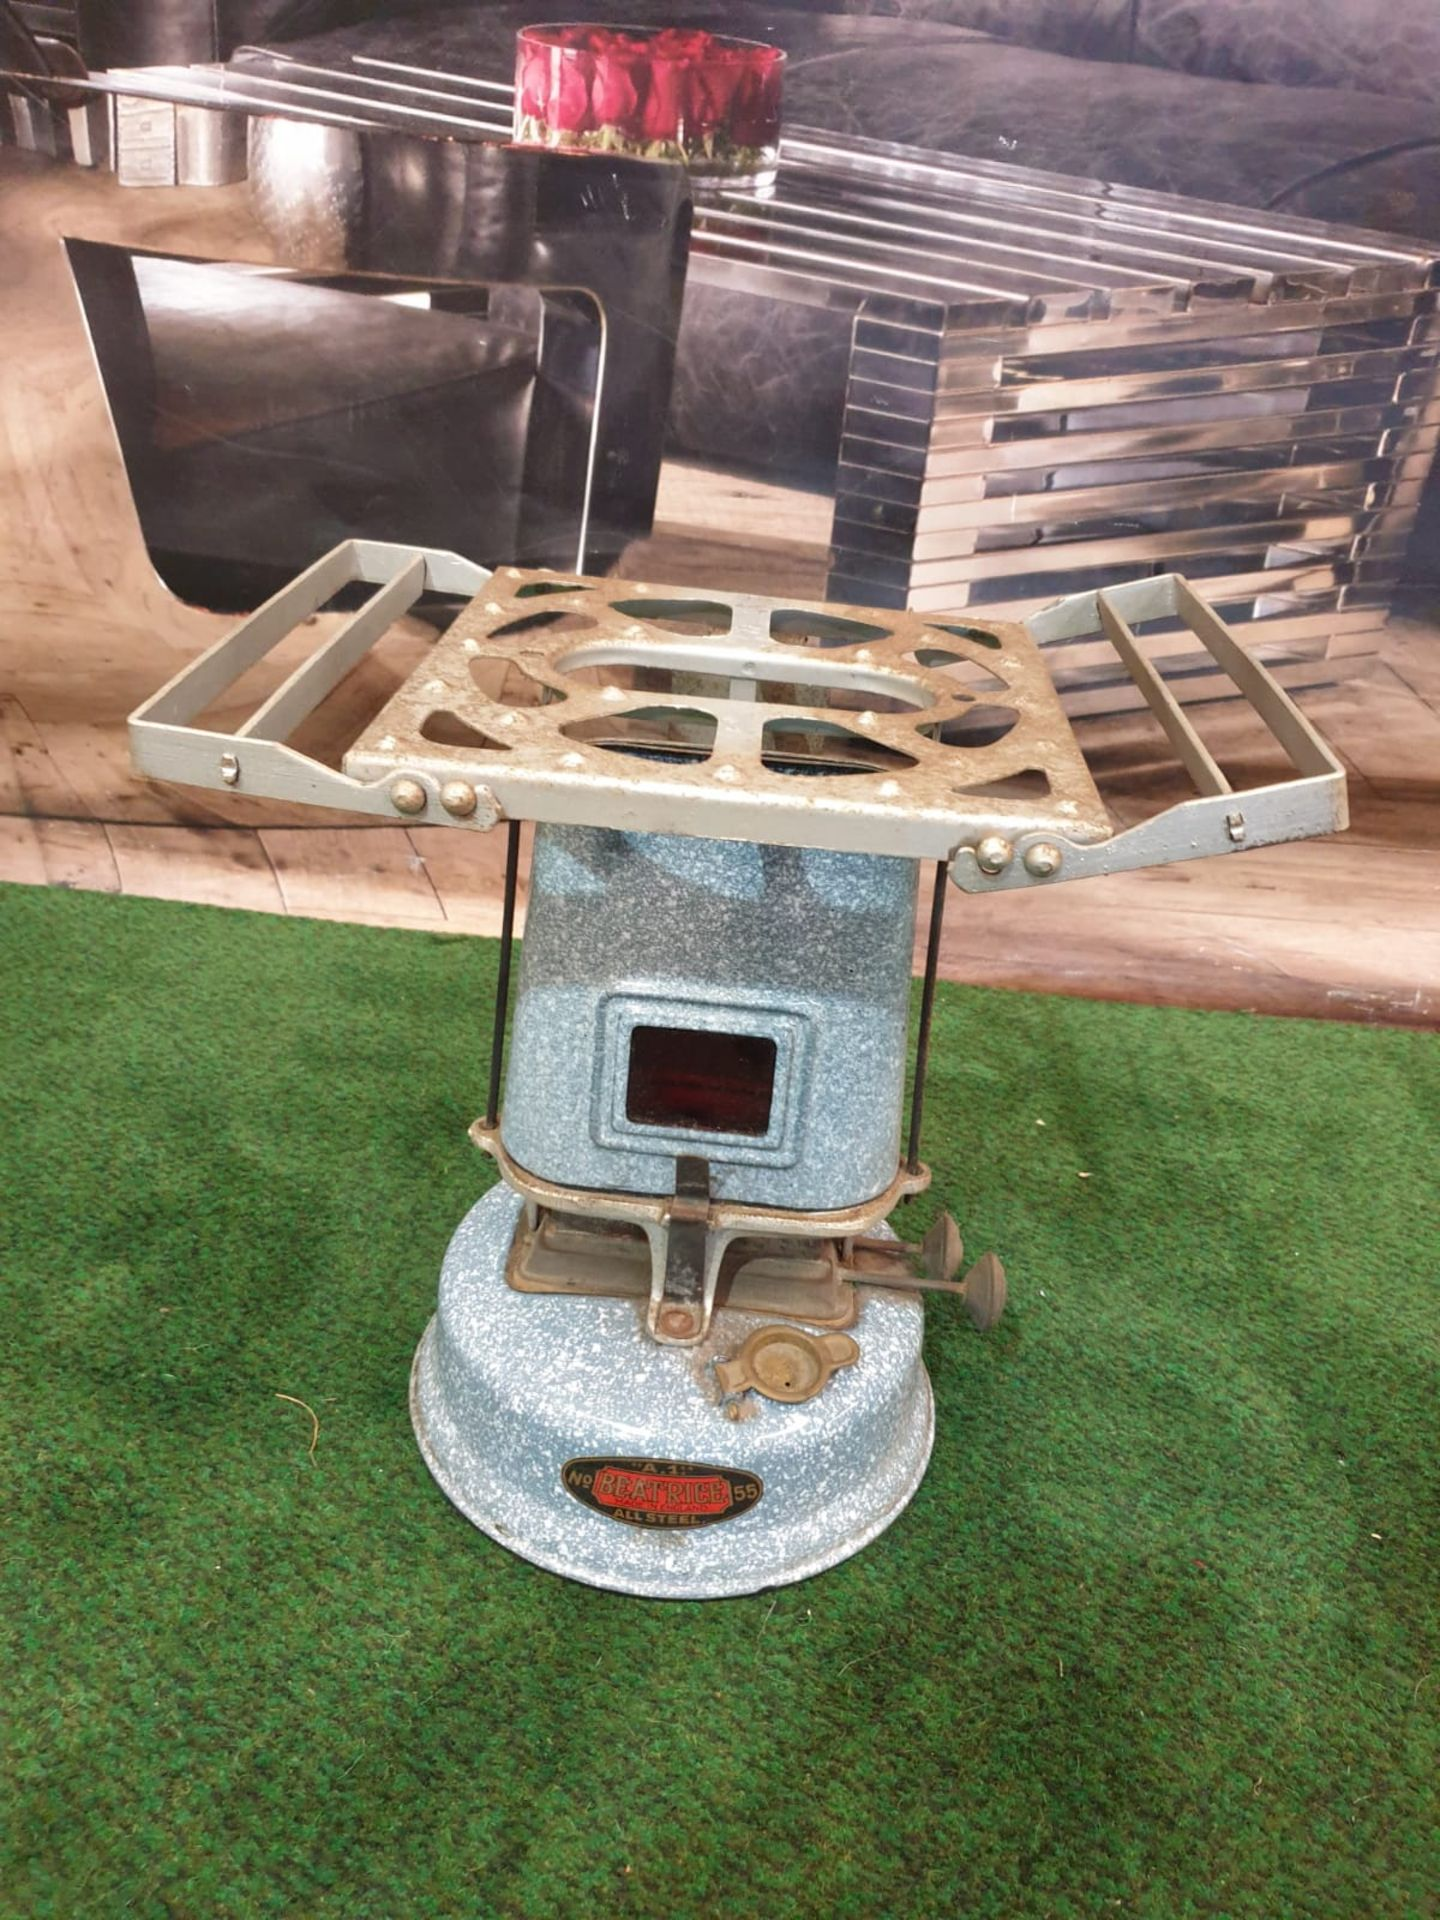 A Beatrice No.55 oil travel stove enamel cooker, paraffin driven, with circular tank at base, and